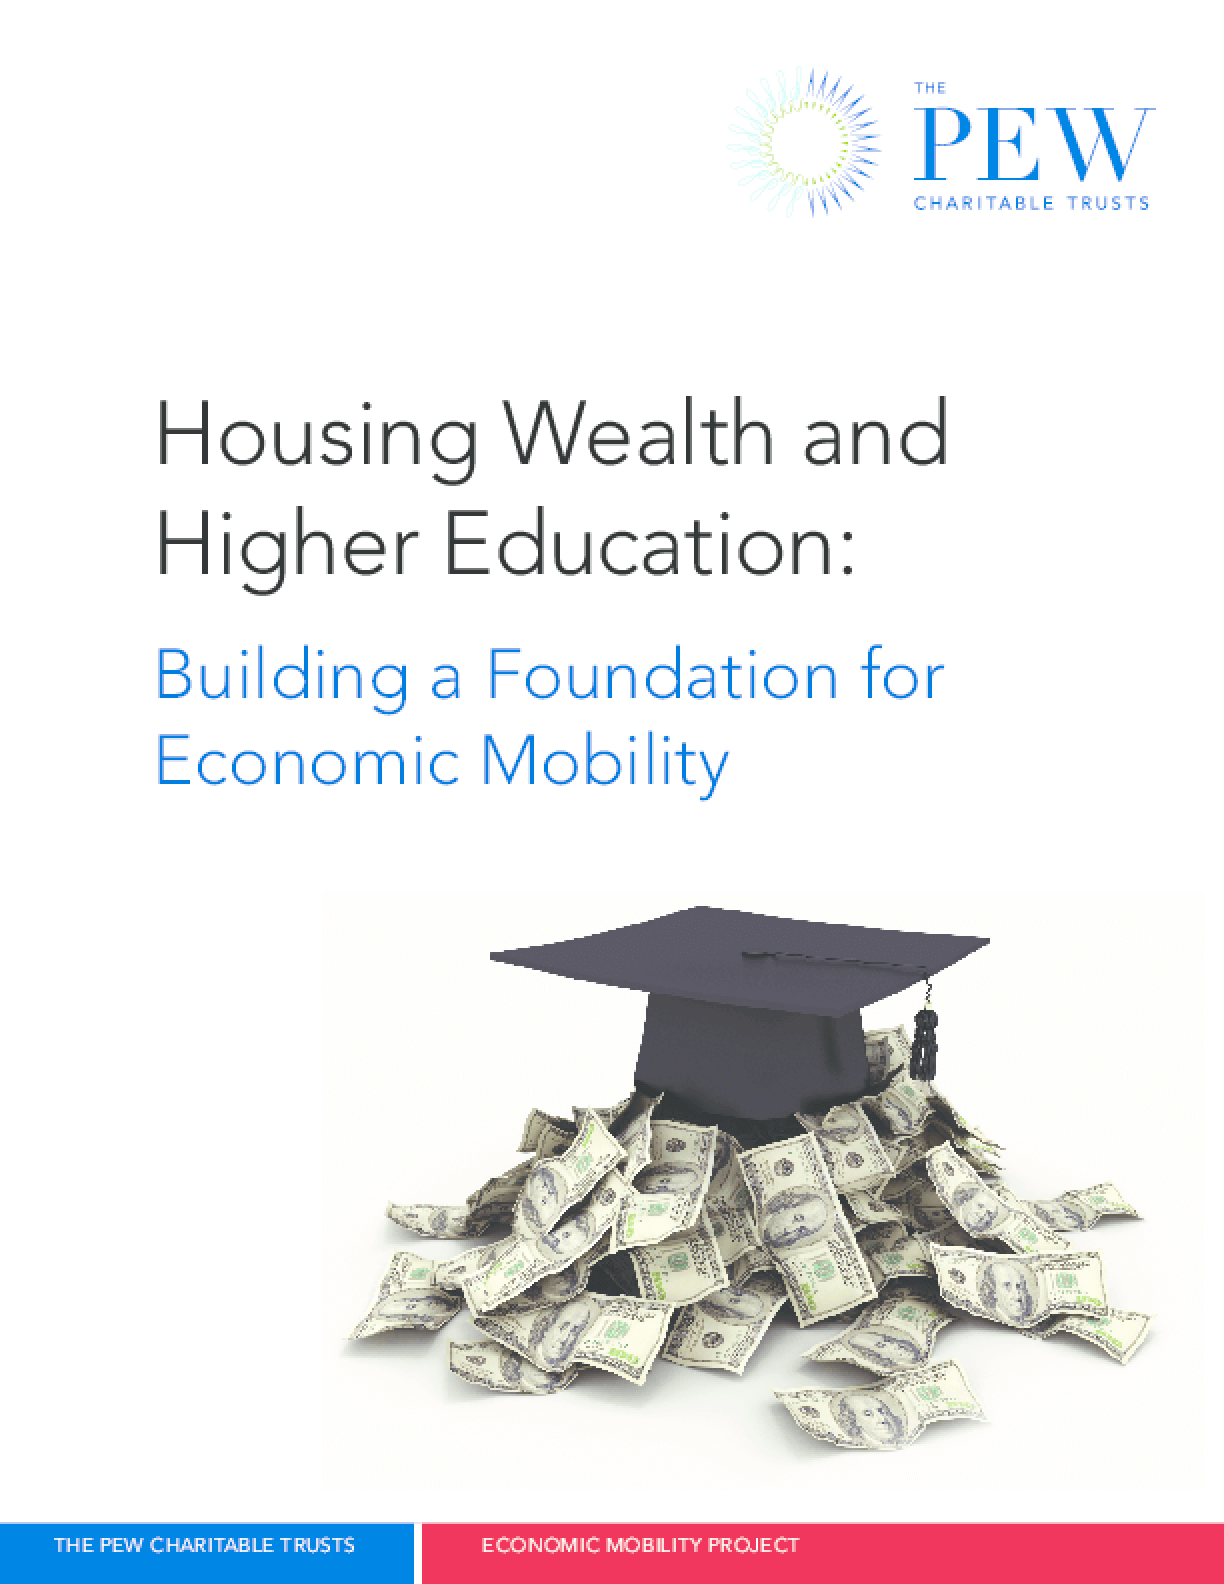 Housing Wealth and Higher Education: Building a Foundation for Economic Mobility